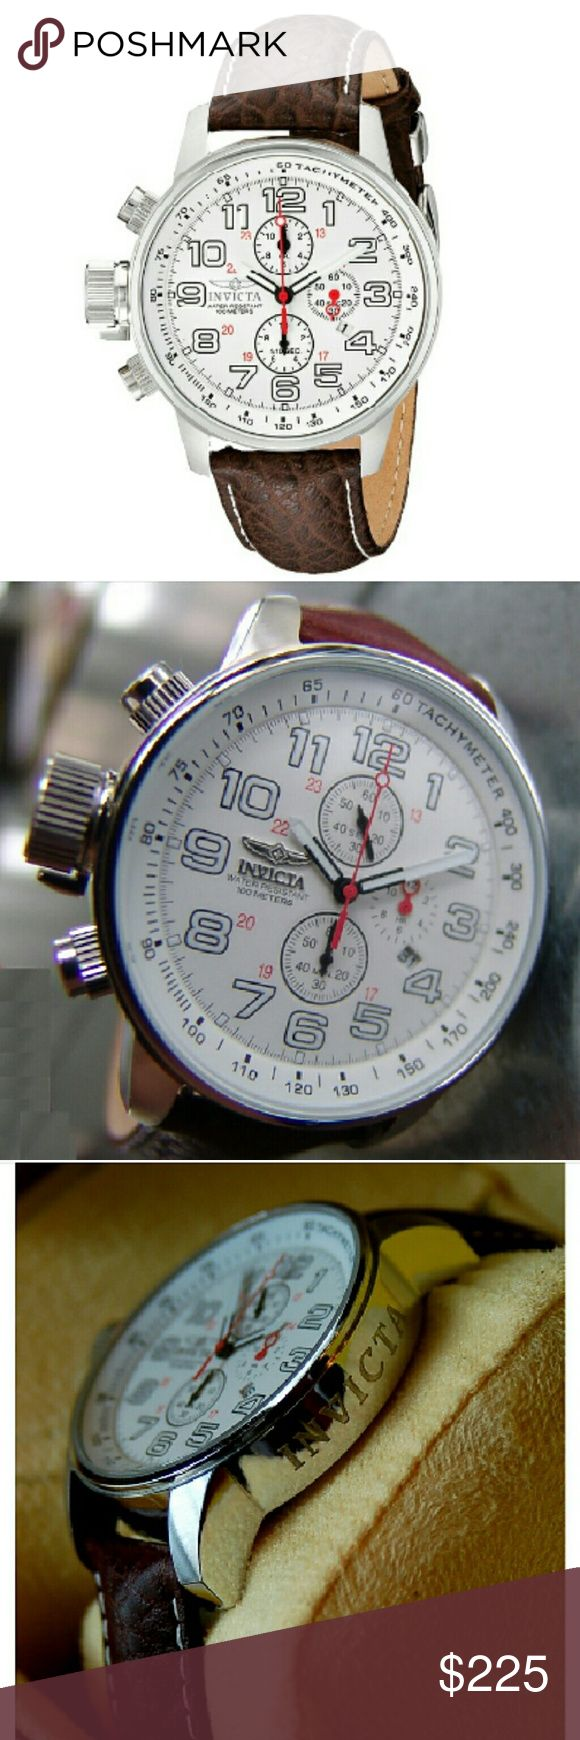 NWT Invicta force Lefty chronograph watch NWT Invicta Men Force Lefty Terra Military Chronograph Watch    FIRM PRICE FIRM PRICE FIRM PRICE   $225.00  . AUTHENTIC WATCH  . AUTHENTIC BOX  . AUTHENTIC MANUAL    SHIPPING?  PLEASE ALLOW FEW BUSINESS DAYS FOR ME TO SHIPPED IT OFF.I HAVE TO GET IT FROM MY WAREHOUSE.    THANK YOU FOR YOUR UNDERSTANDING. Invicta Accessories Watches